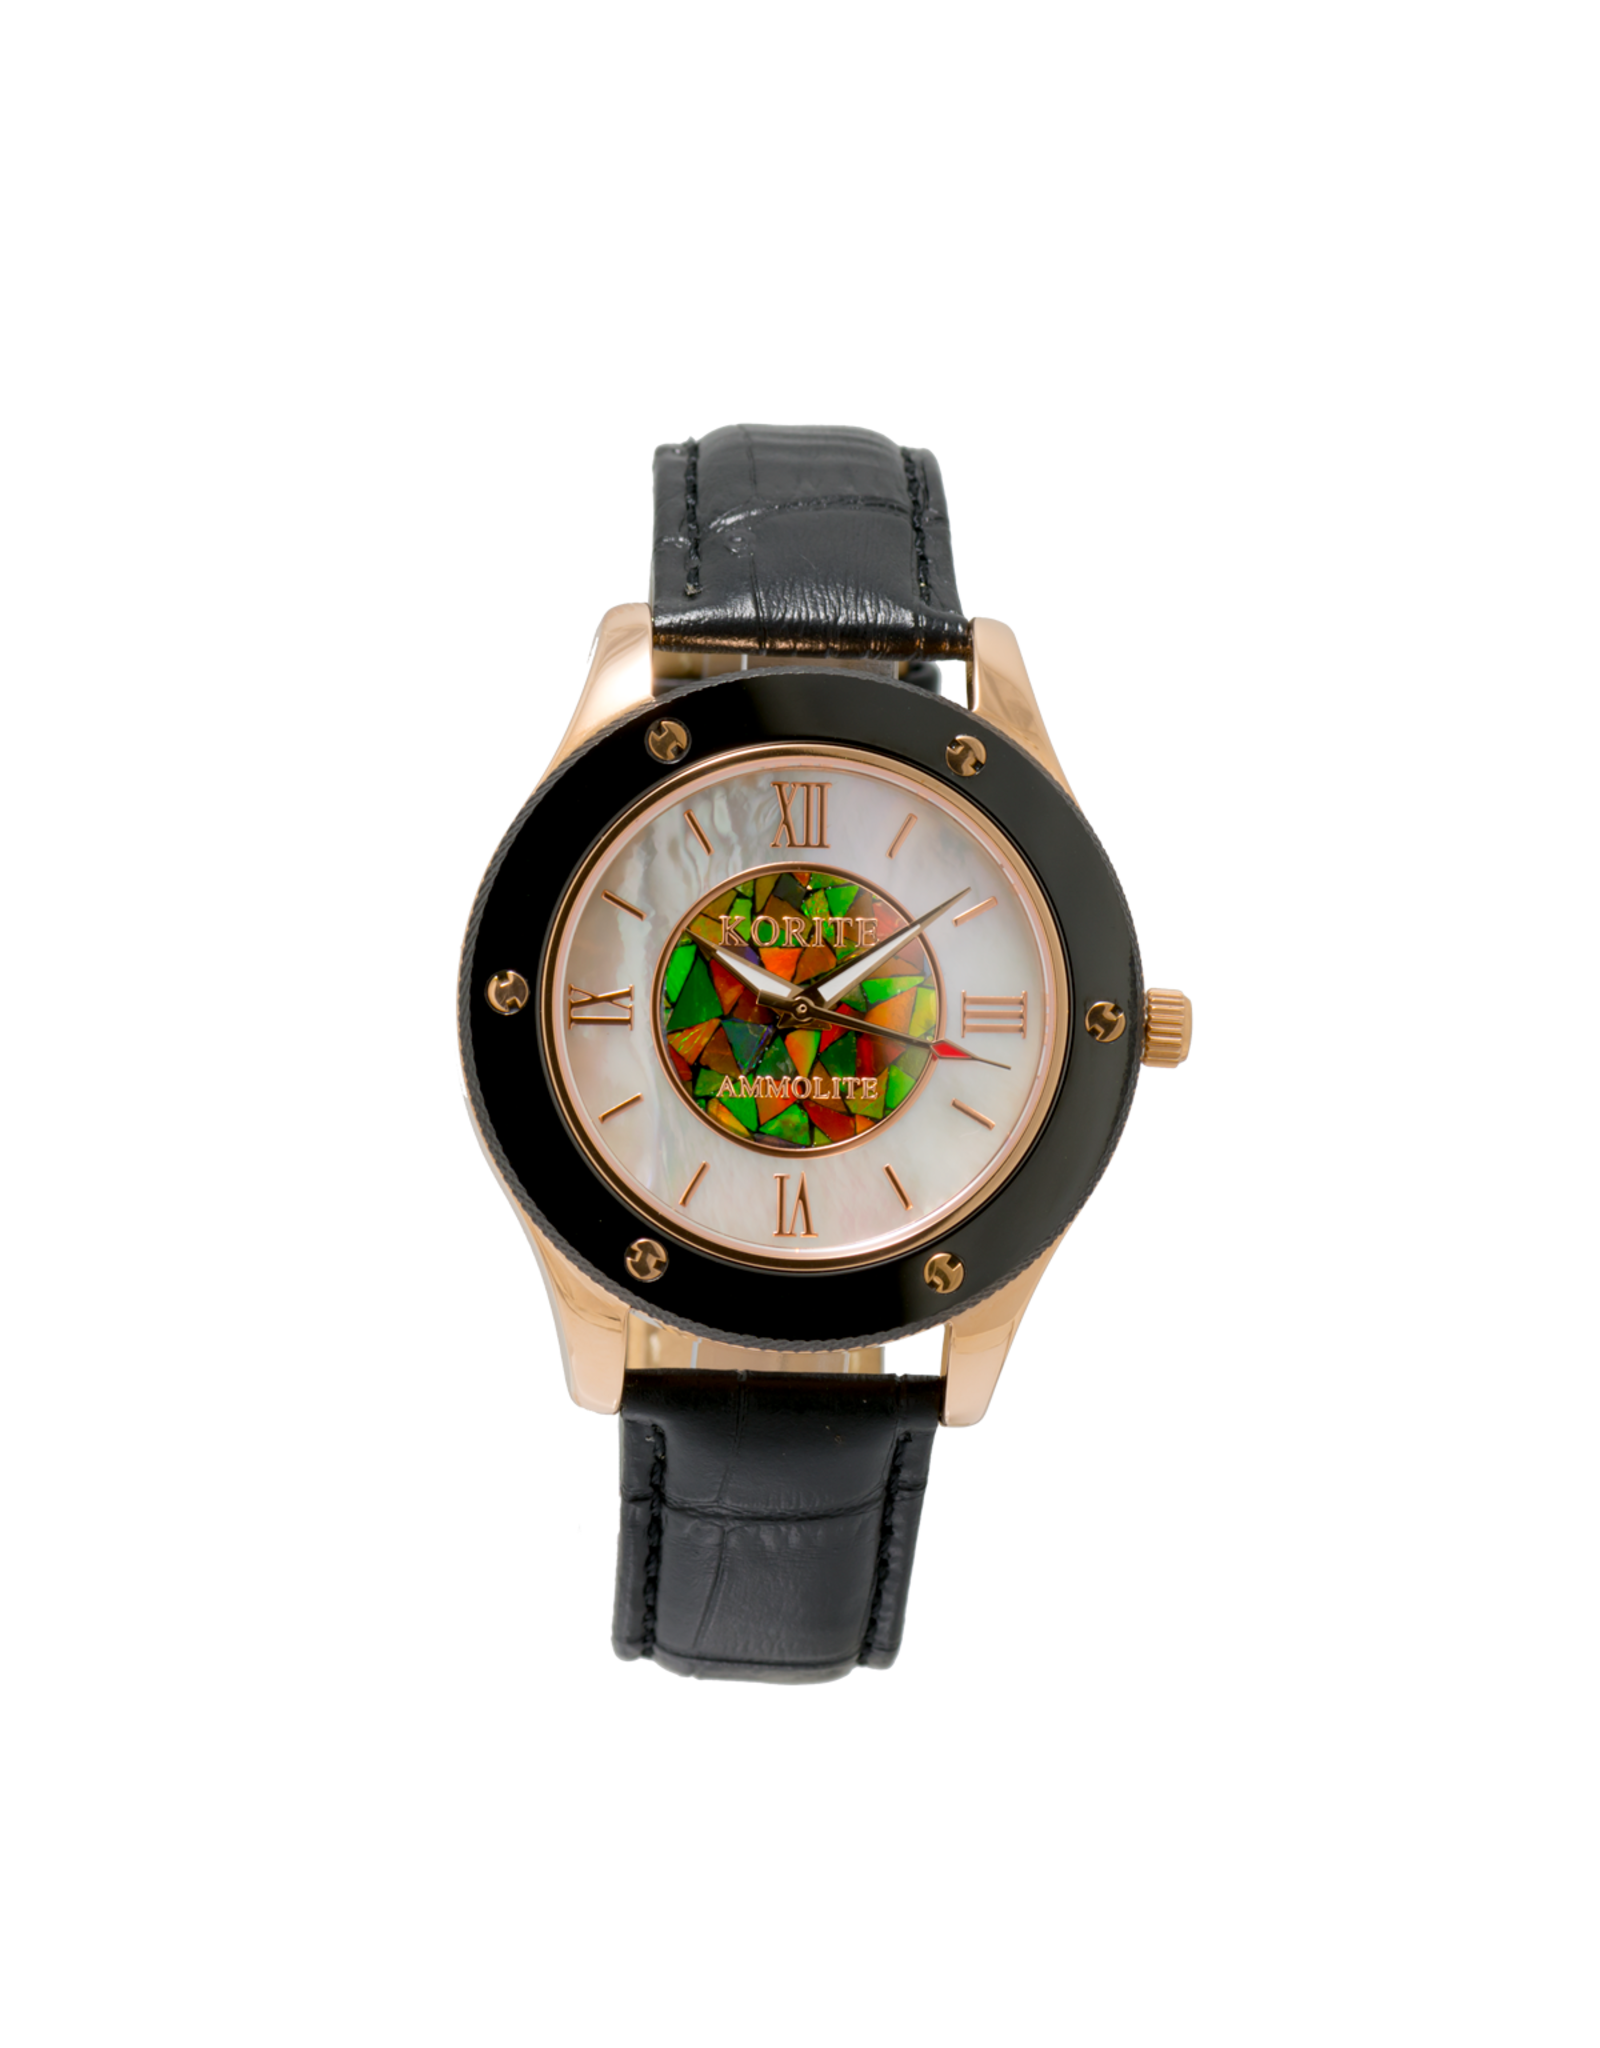 Ammolite Contempra Watch - A834BL